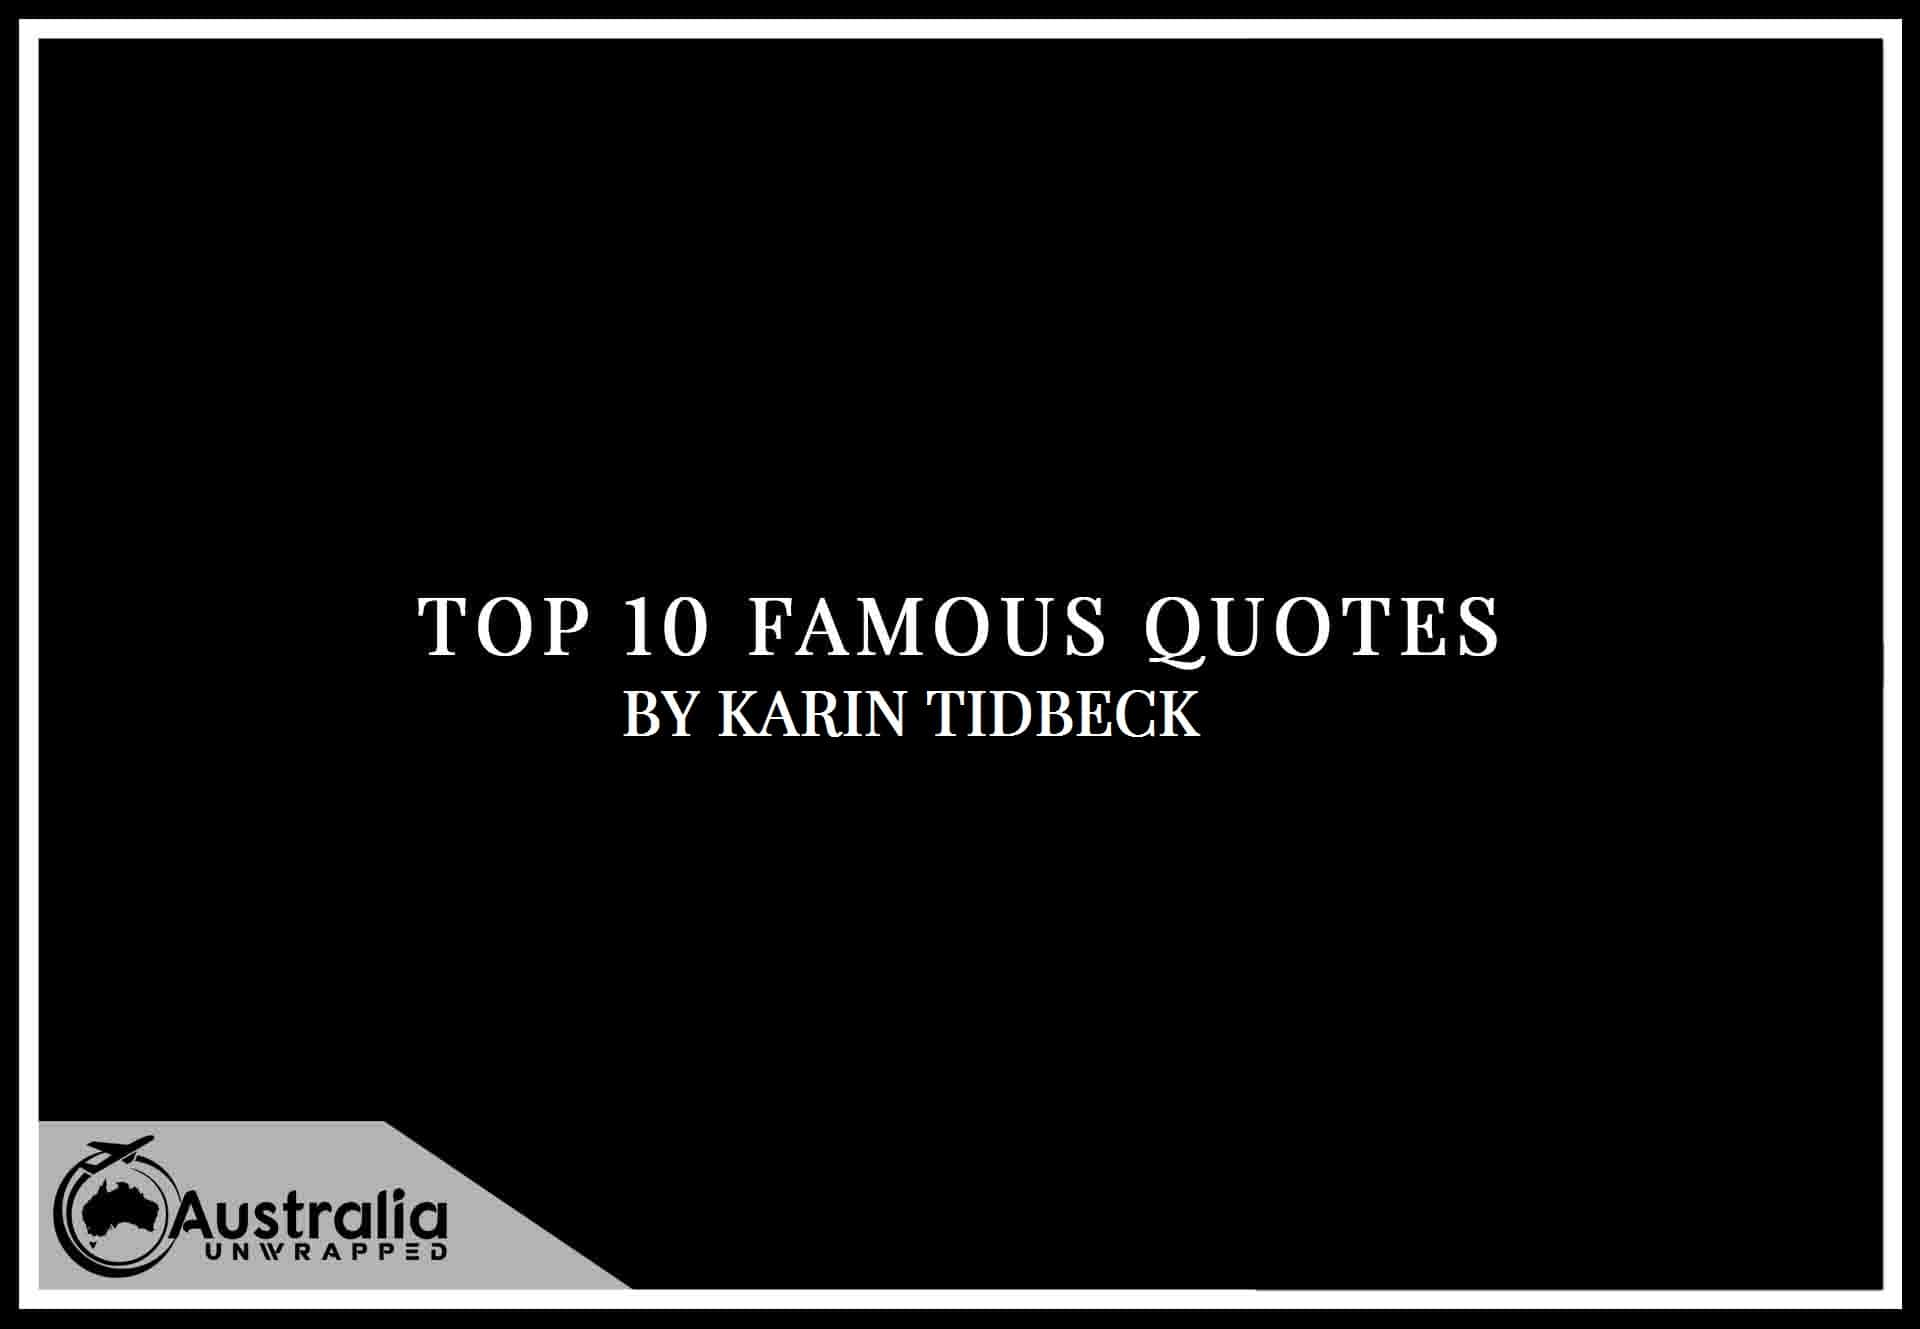 Karin Tidbeck's Top 10 Popular and Famous Quotes